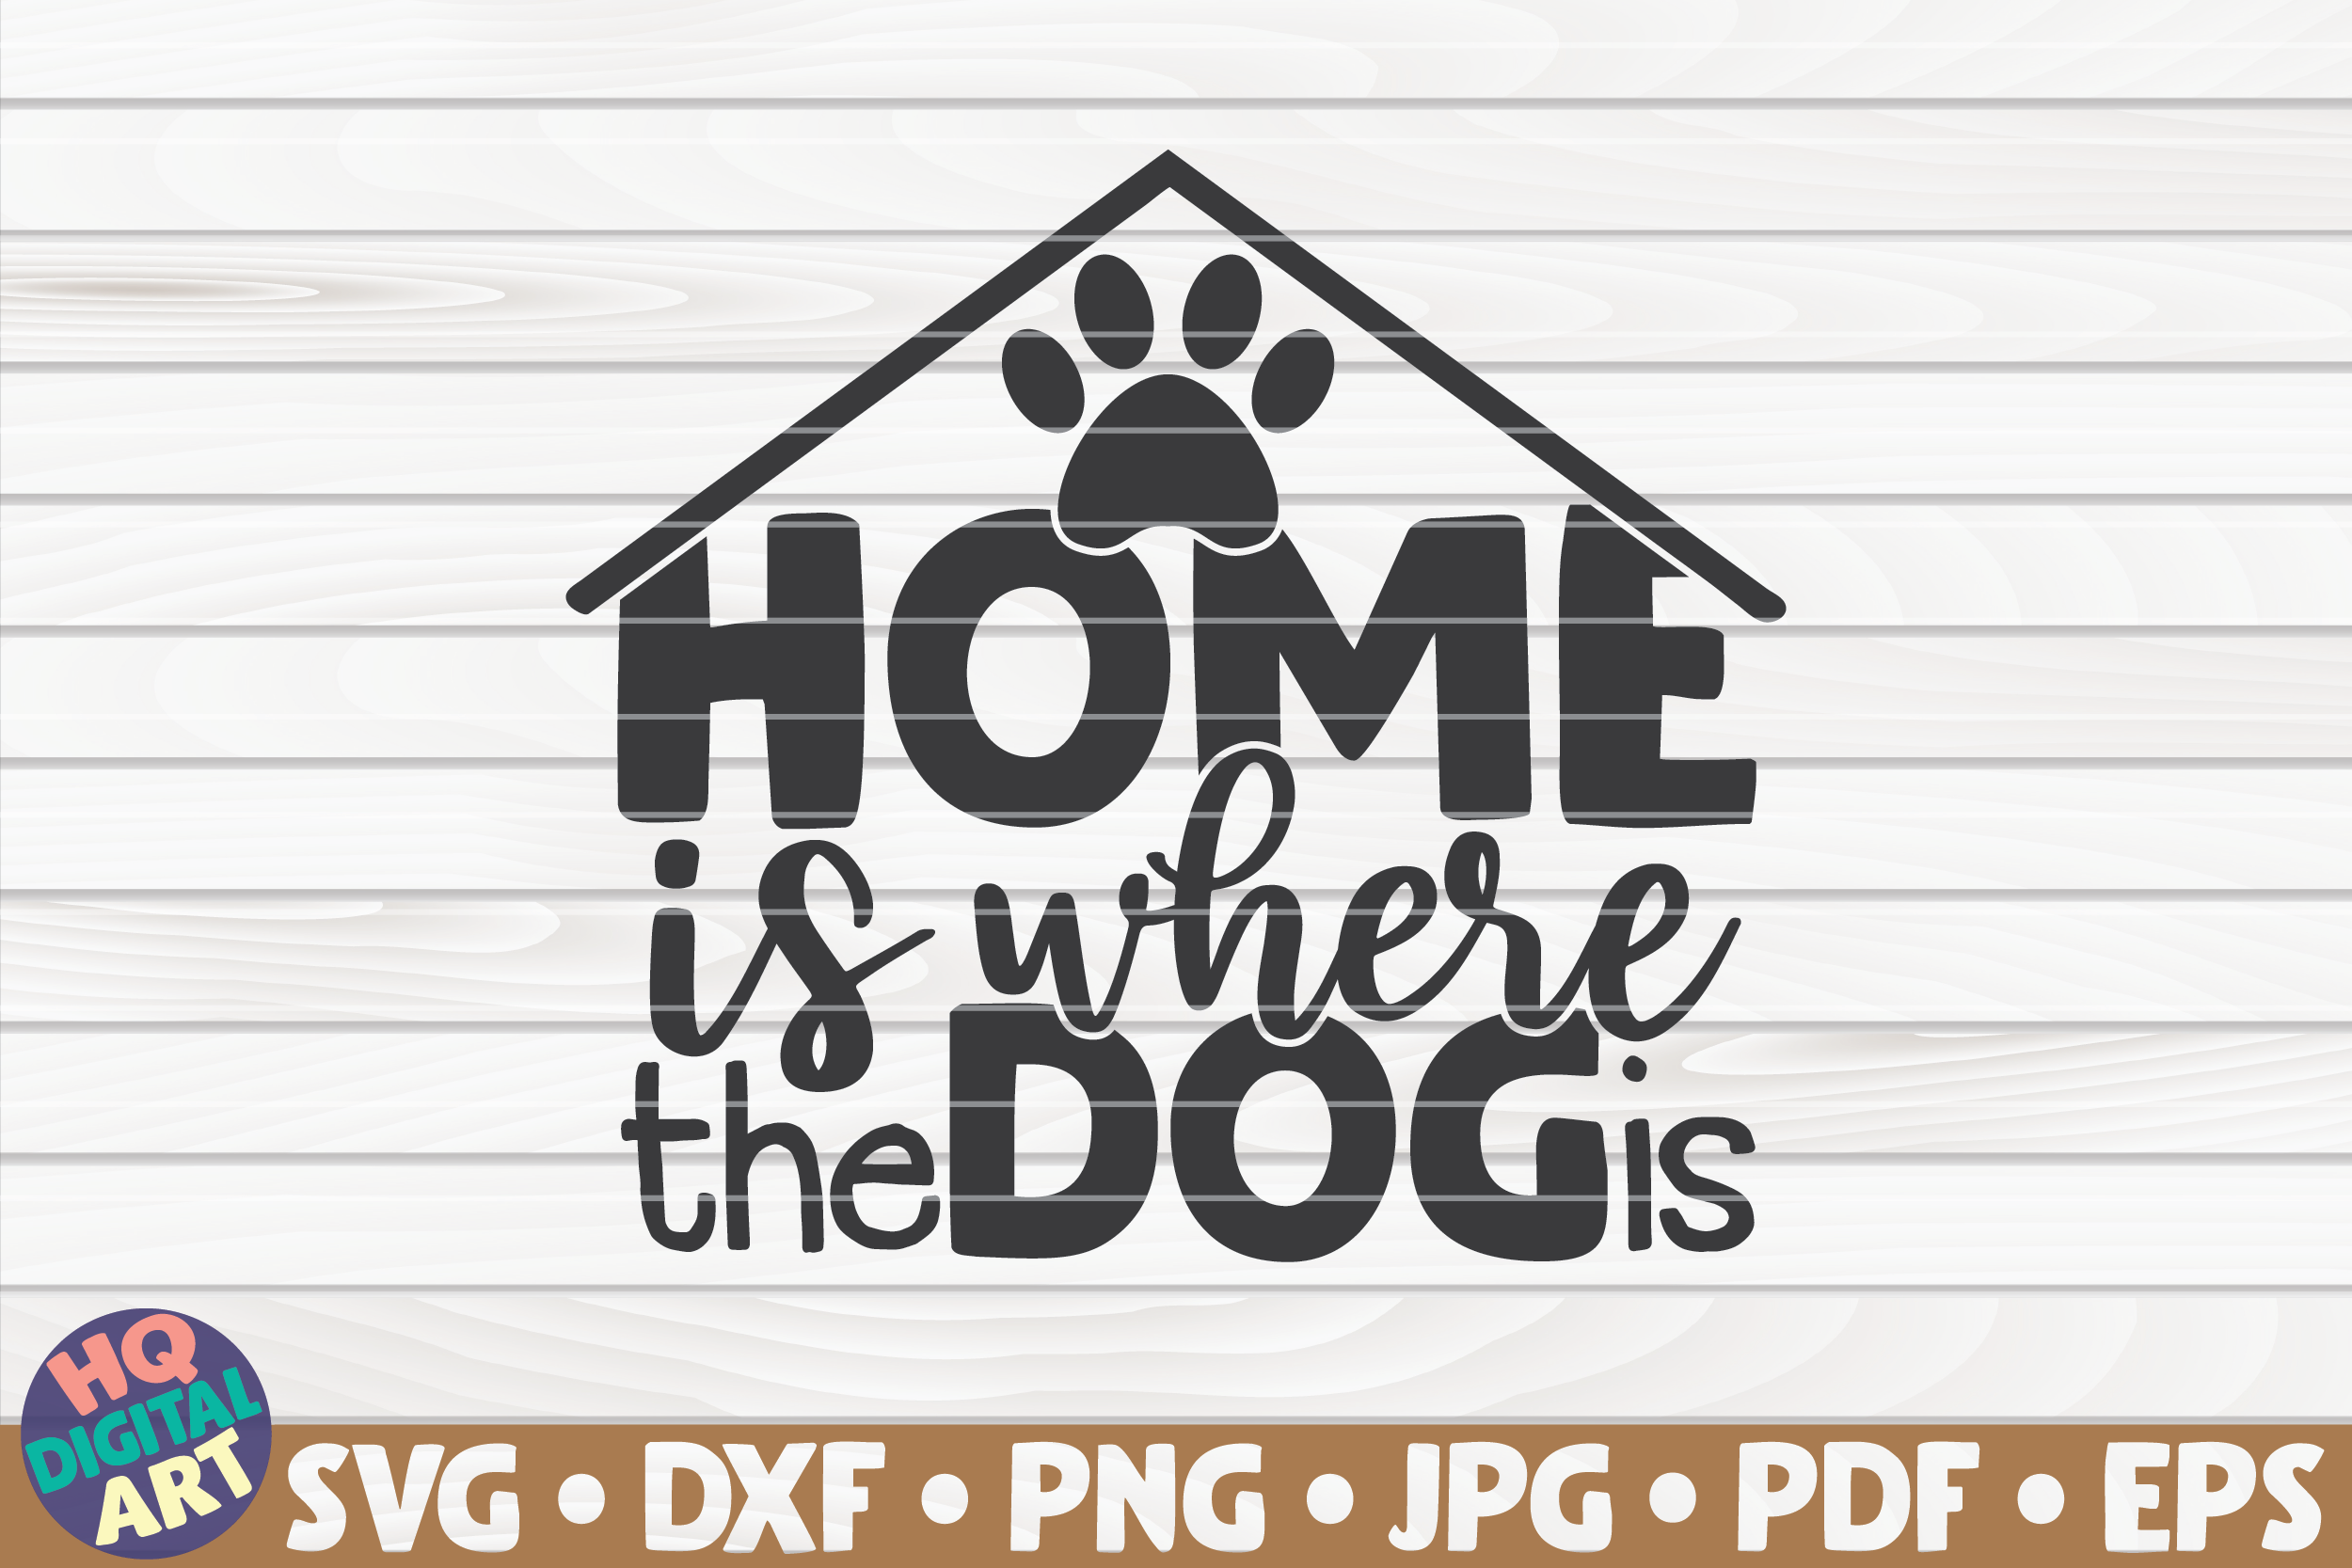 Download Free Home Is Where The Dog Is Graphic By Mihaibadea95 Creative Fabrica for Cricut Explore, Silhouette and other cutting machines.